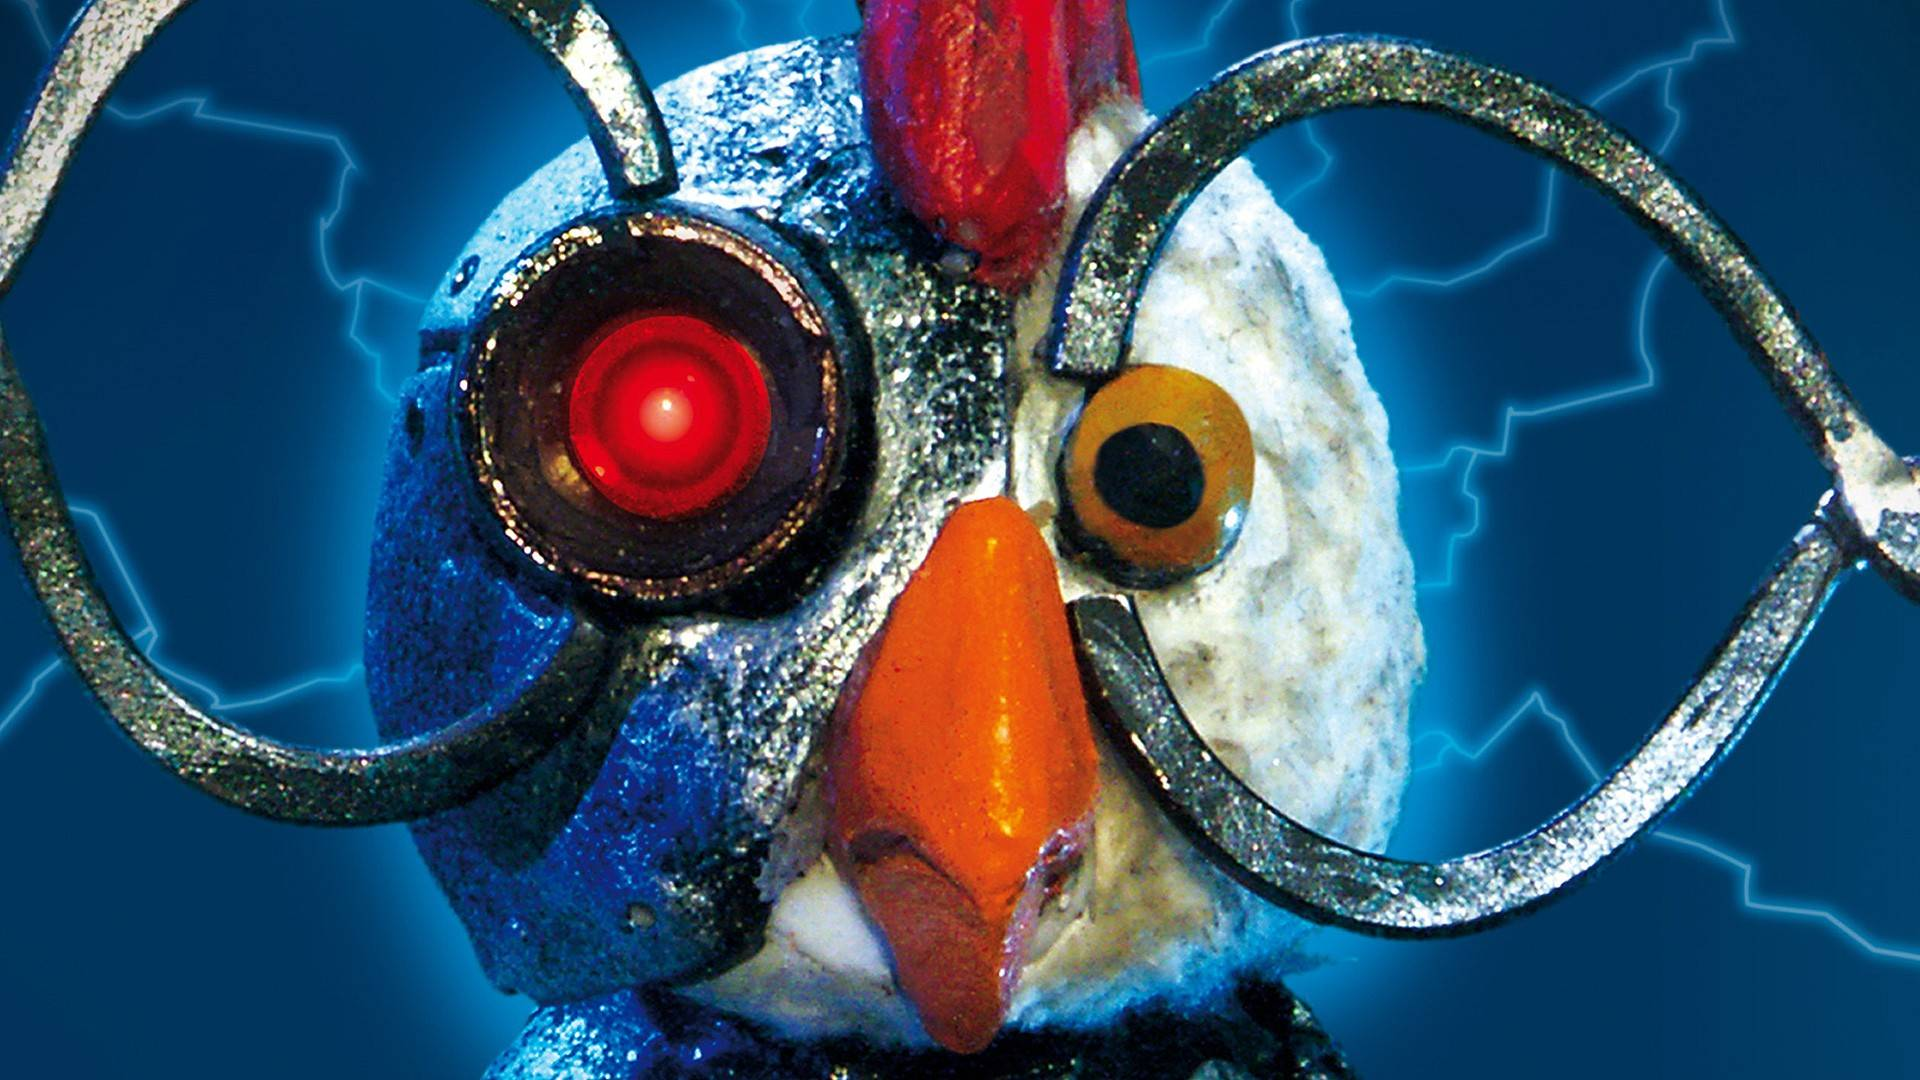 Robot Chicken HD Wallpapers